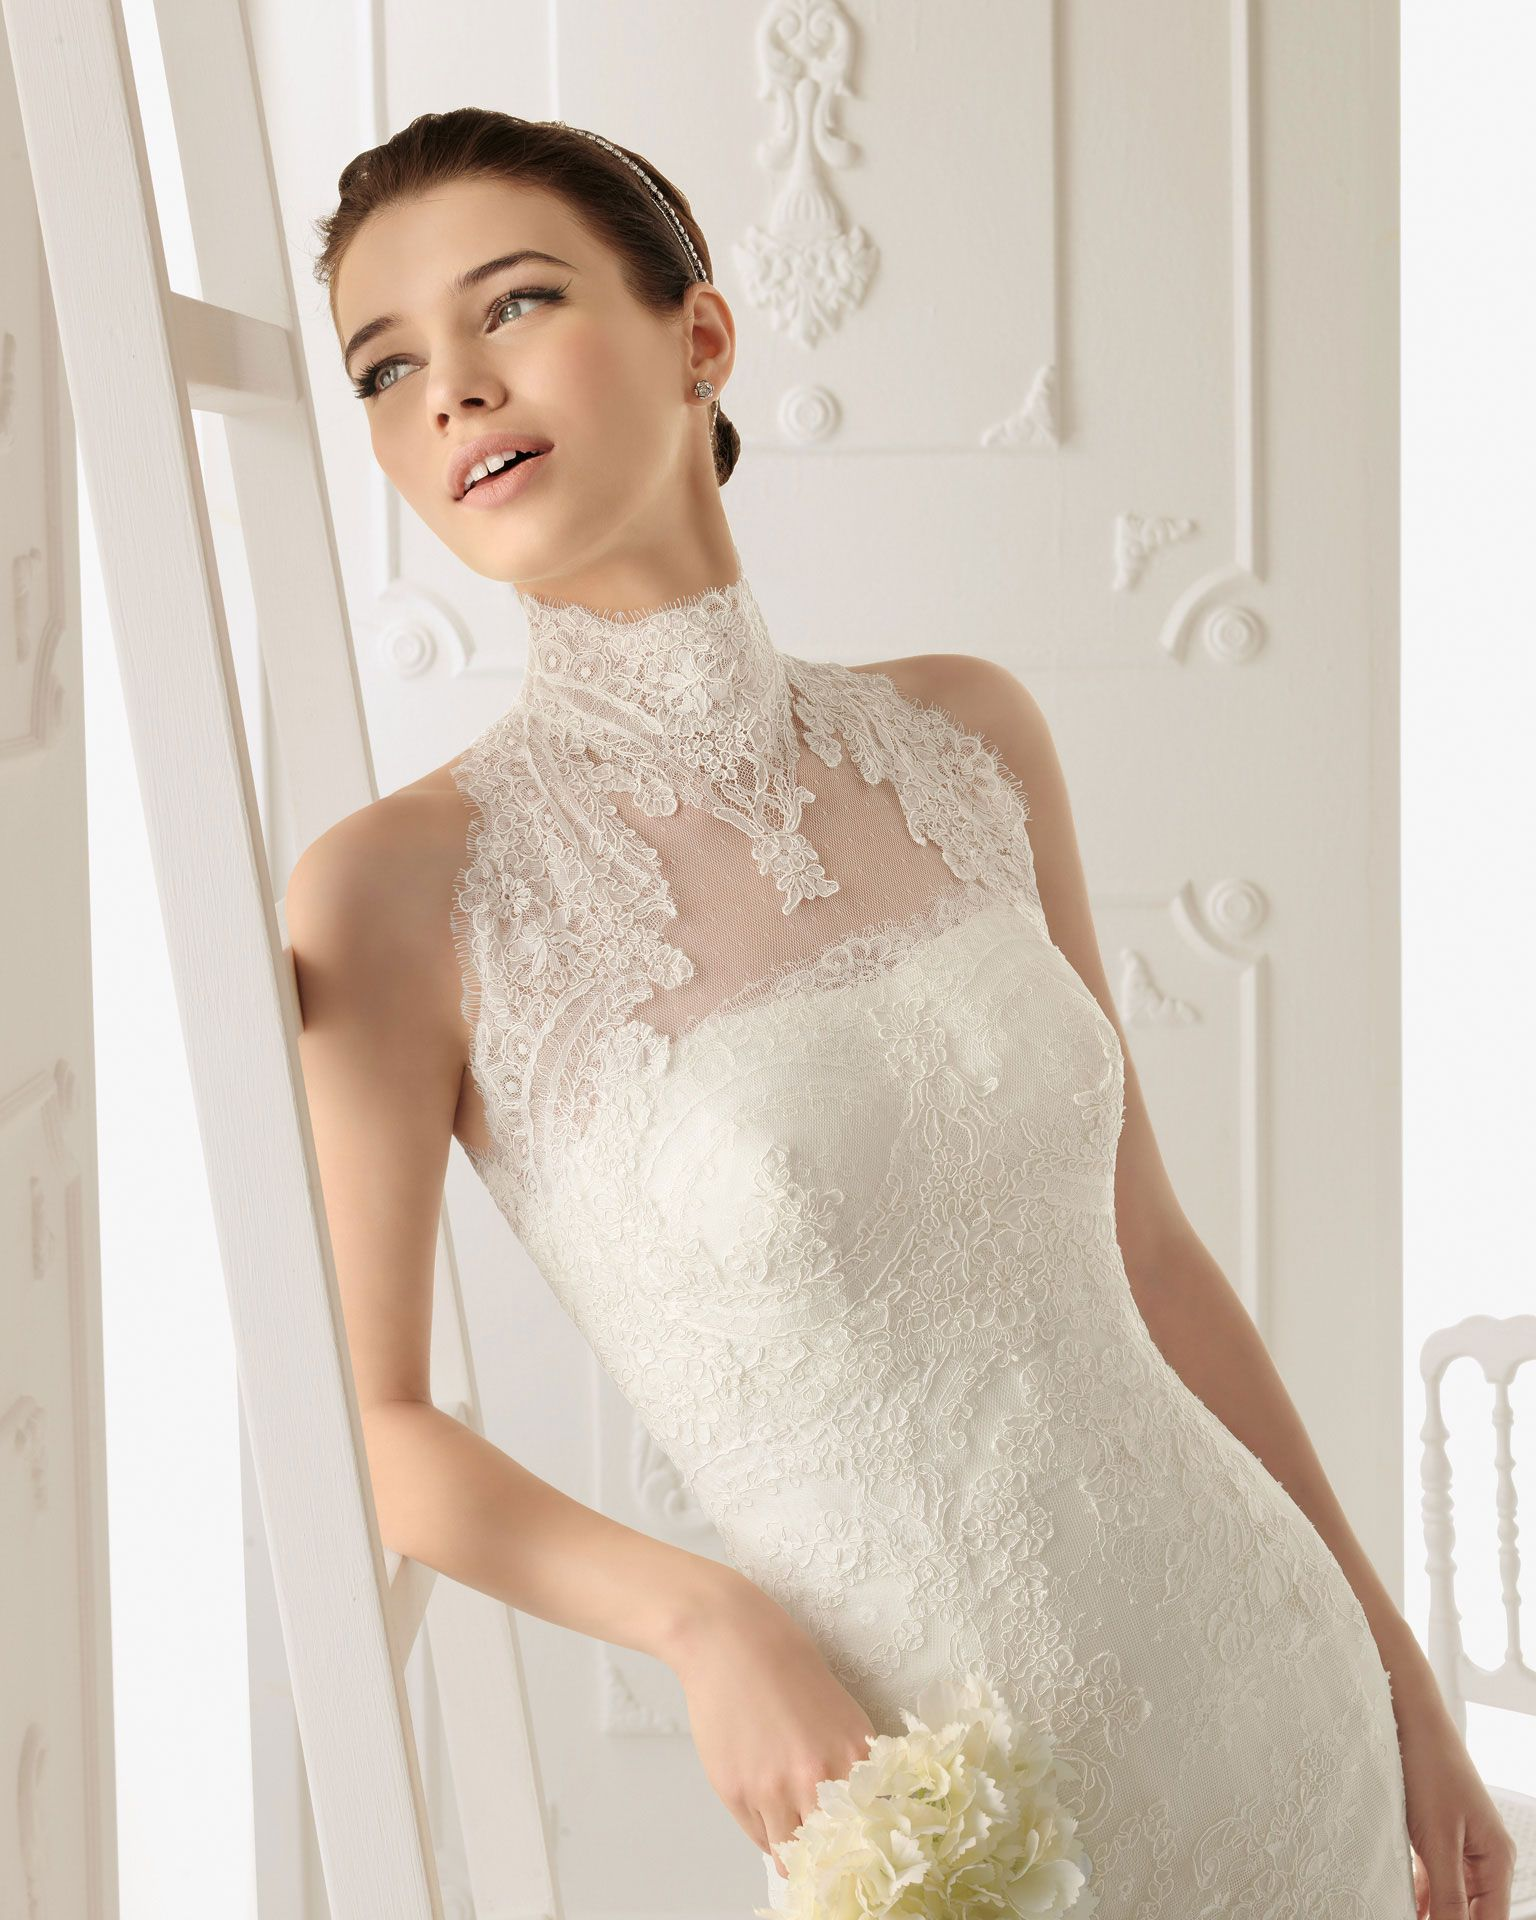 Sheer top wedding dress  Rosa Clara  a lace top layered over your dress  for the perfect